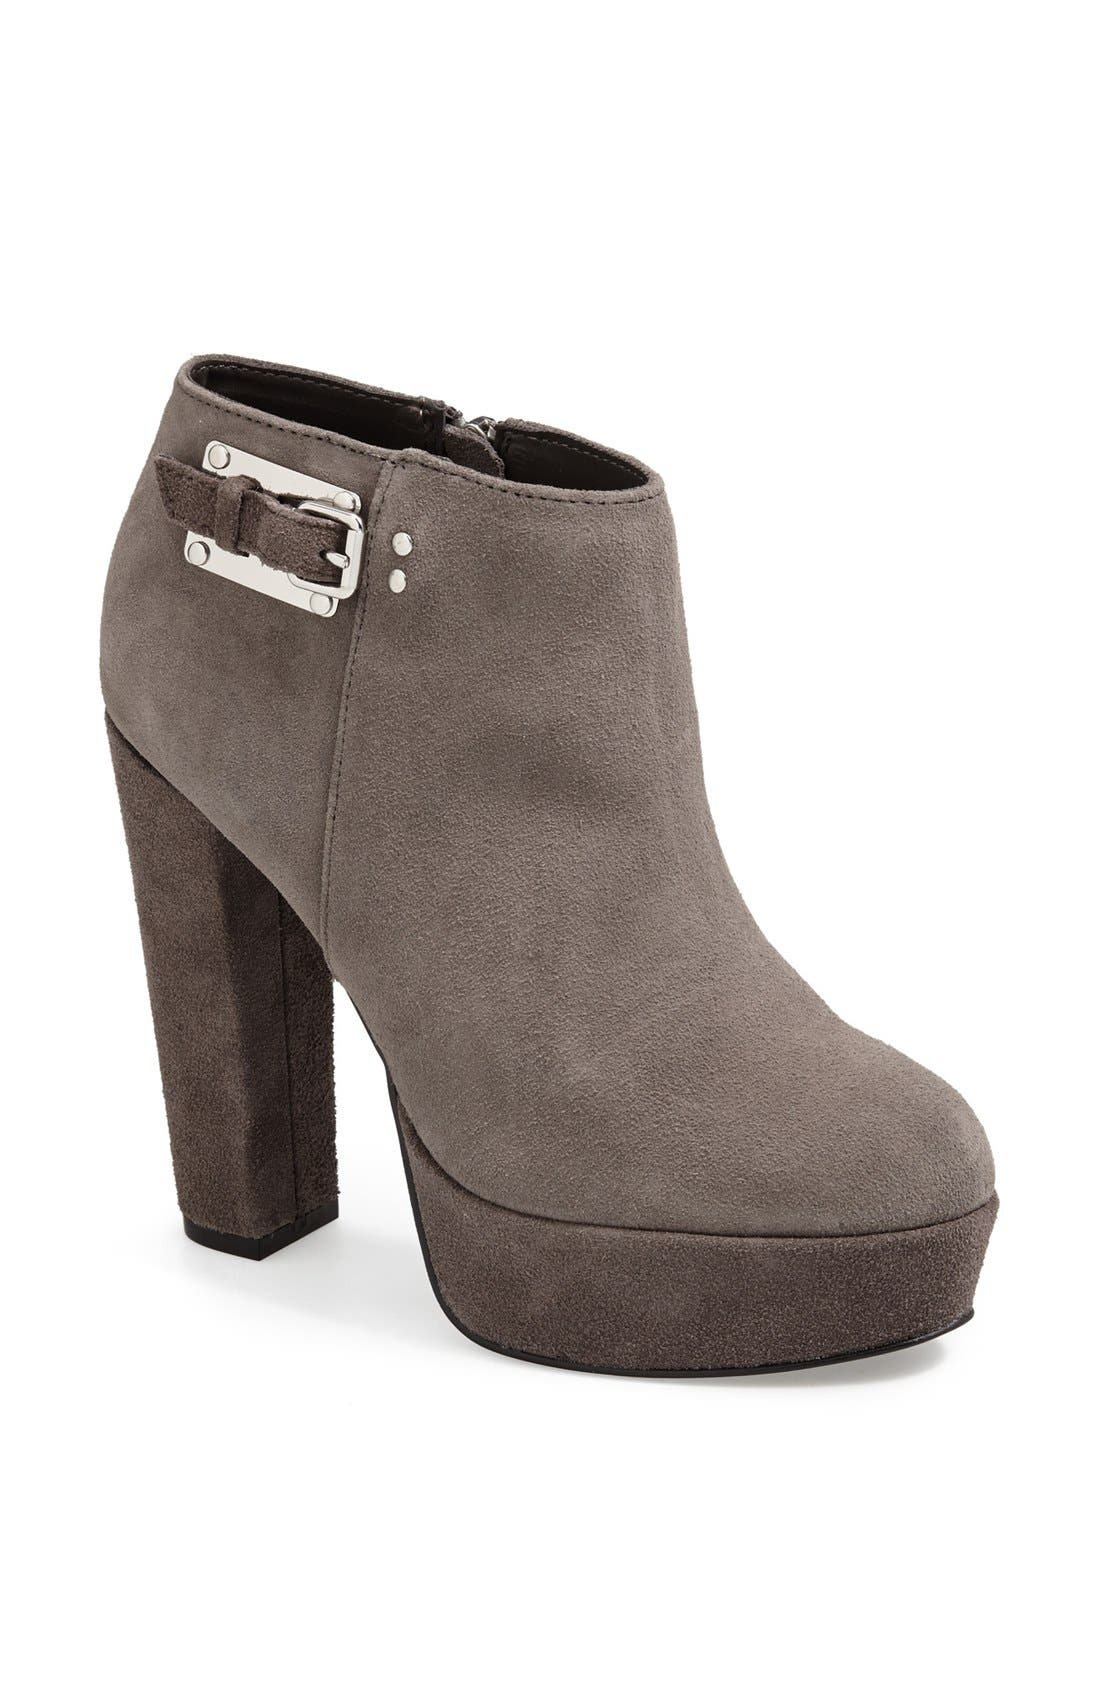 Main Image - DV by Dolce Vita 'Valensia' Bootie